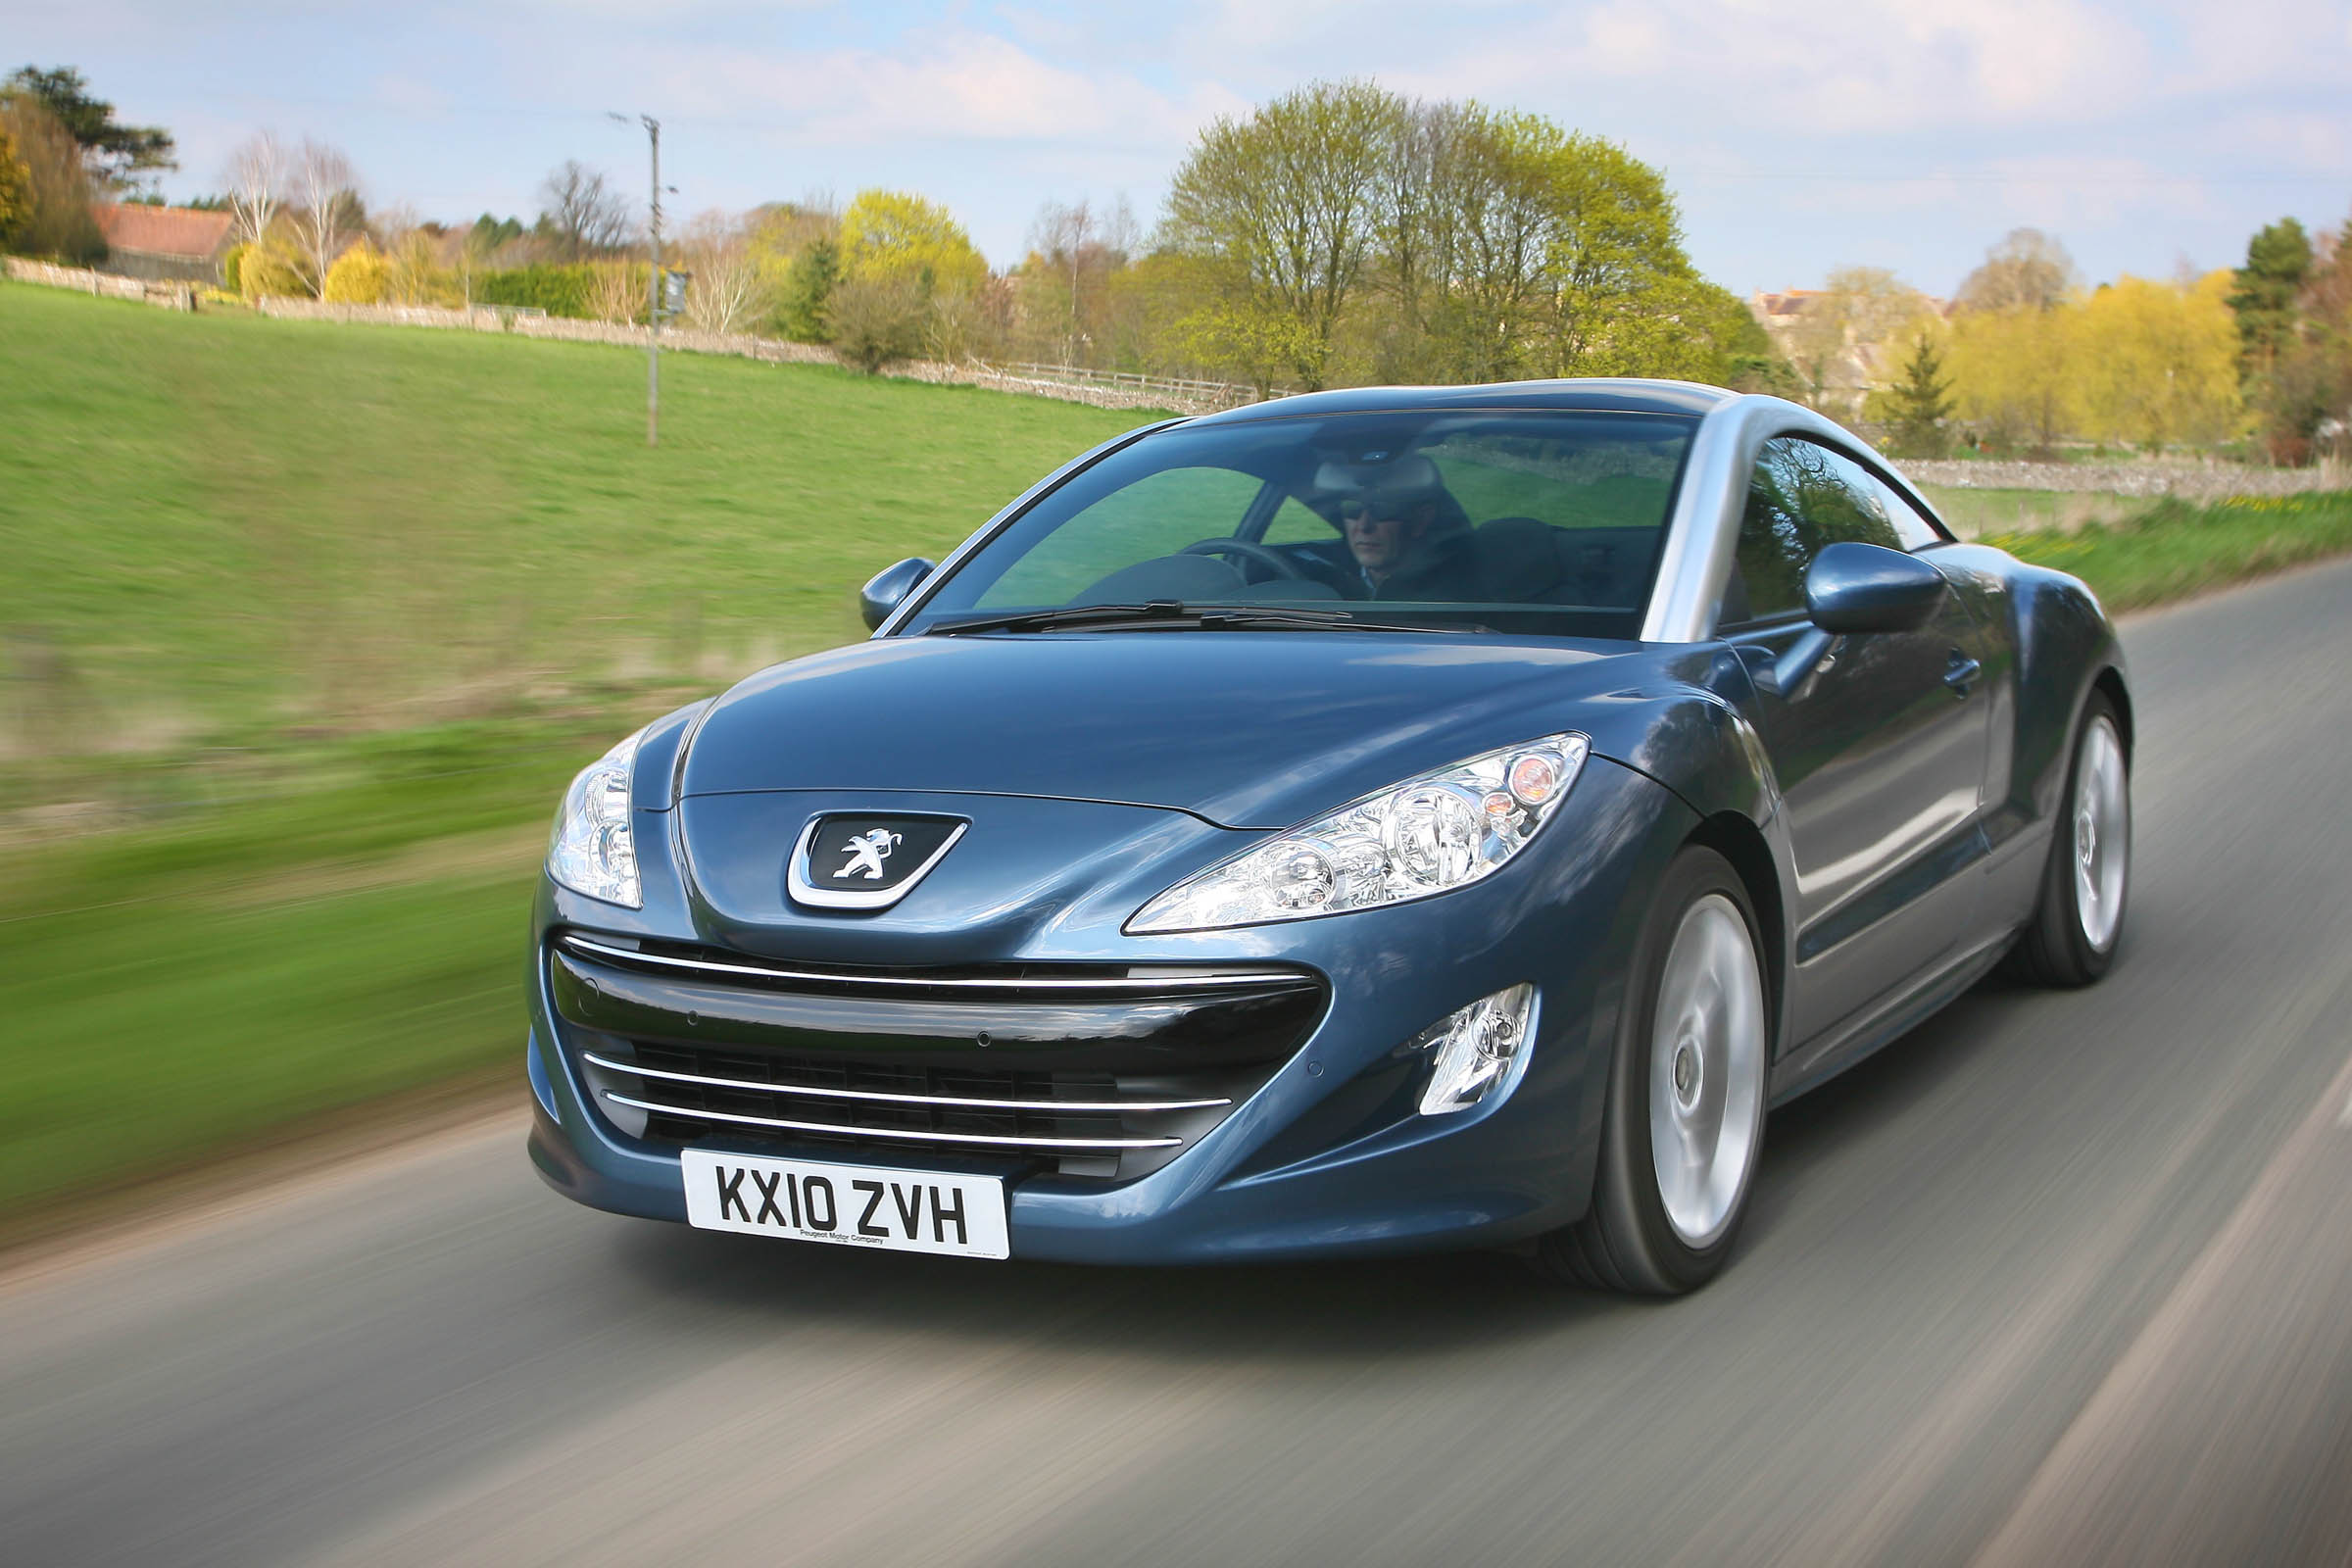 Cars for Sale Near Me 7000 Luxury Cheap Fun Cars Our Used Sporty Car Picks From £1 000 to